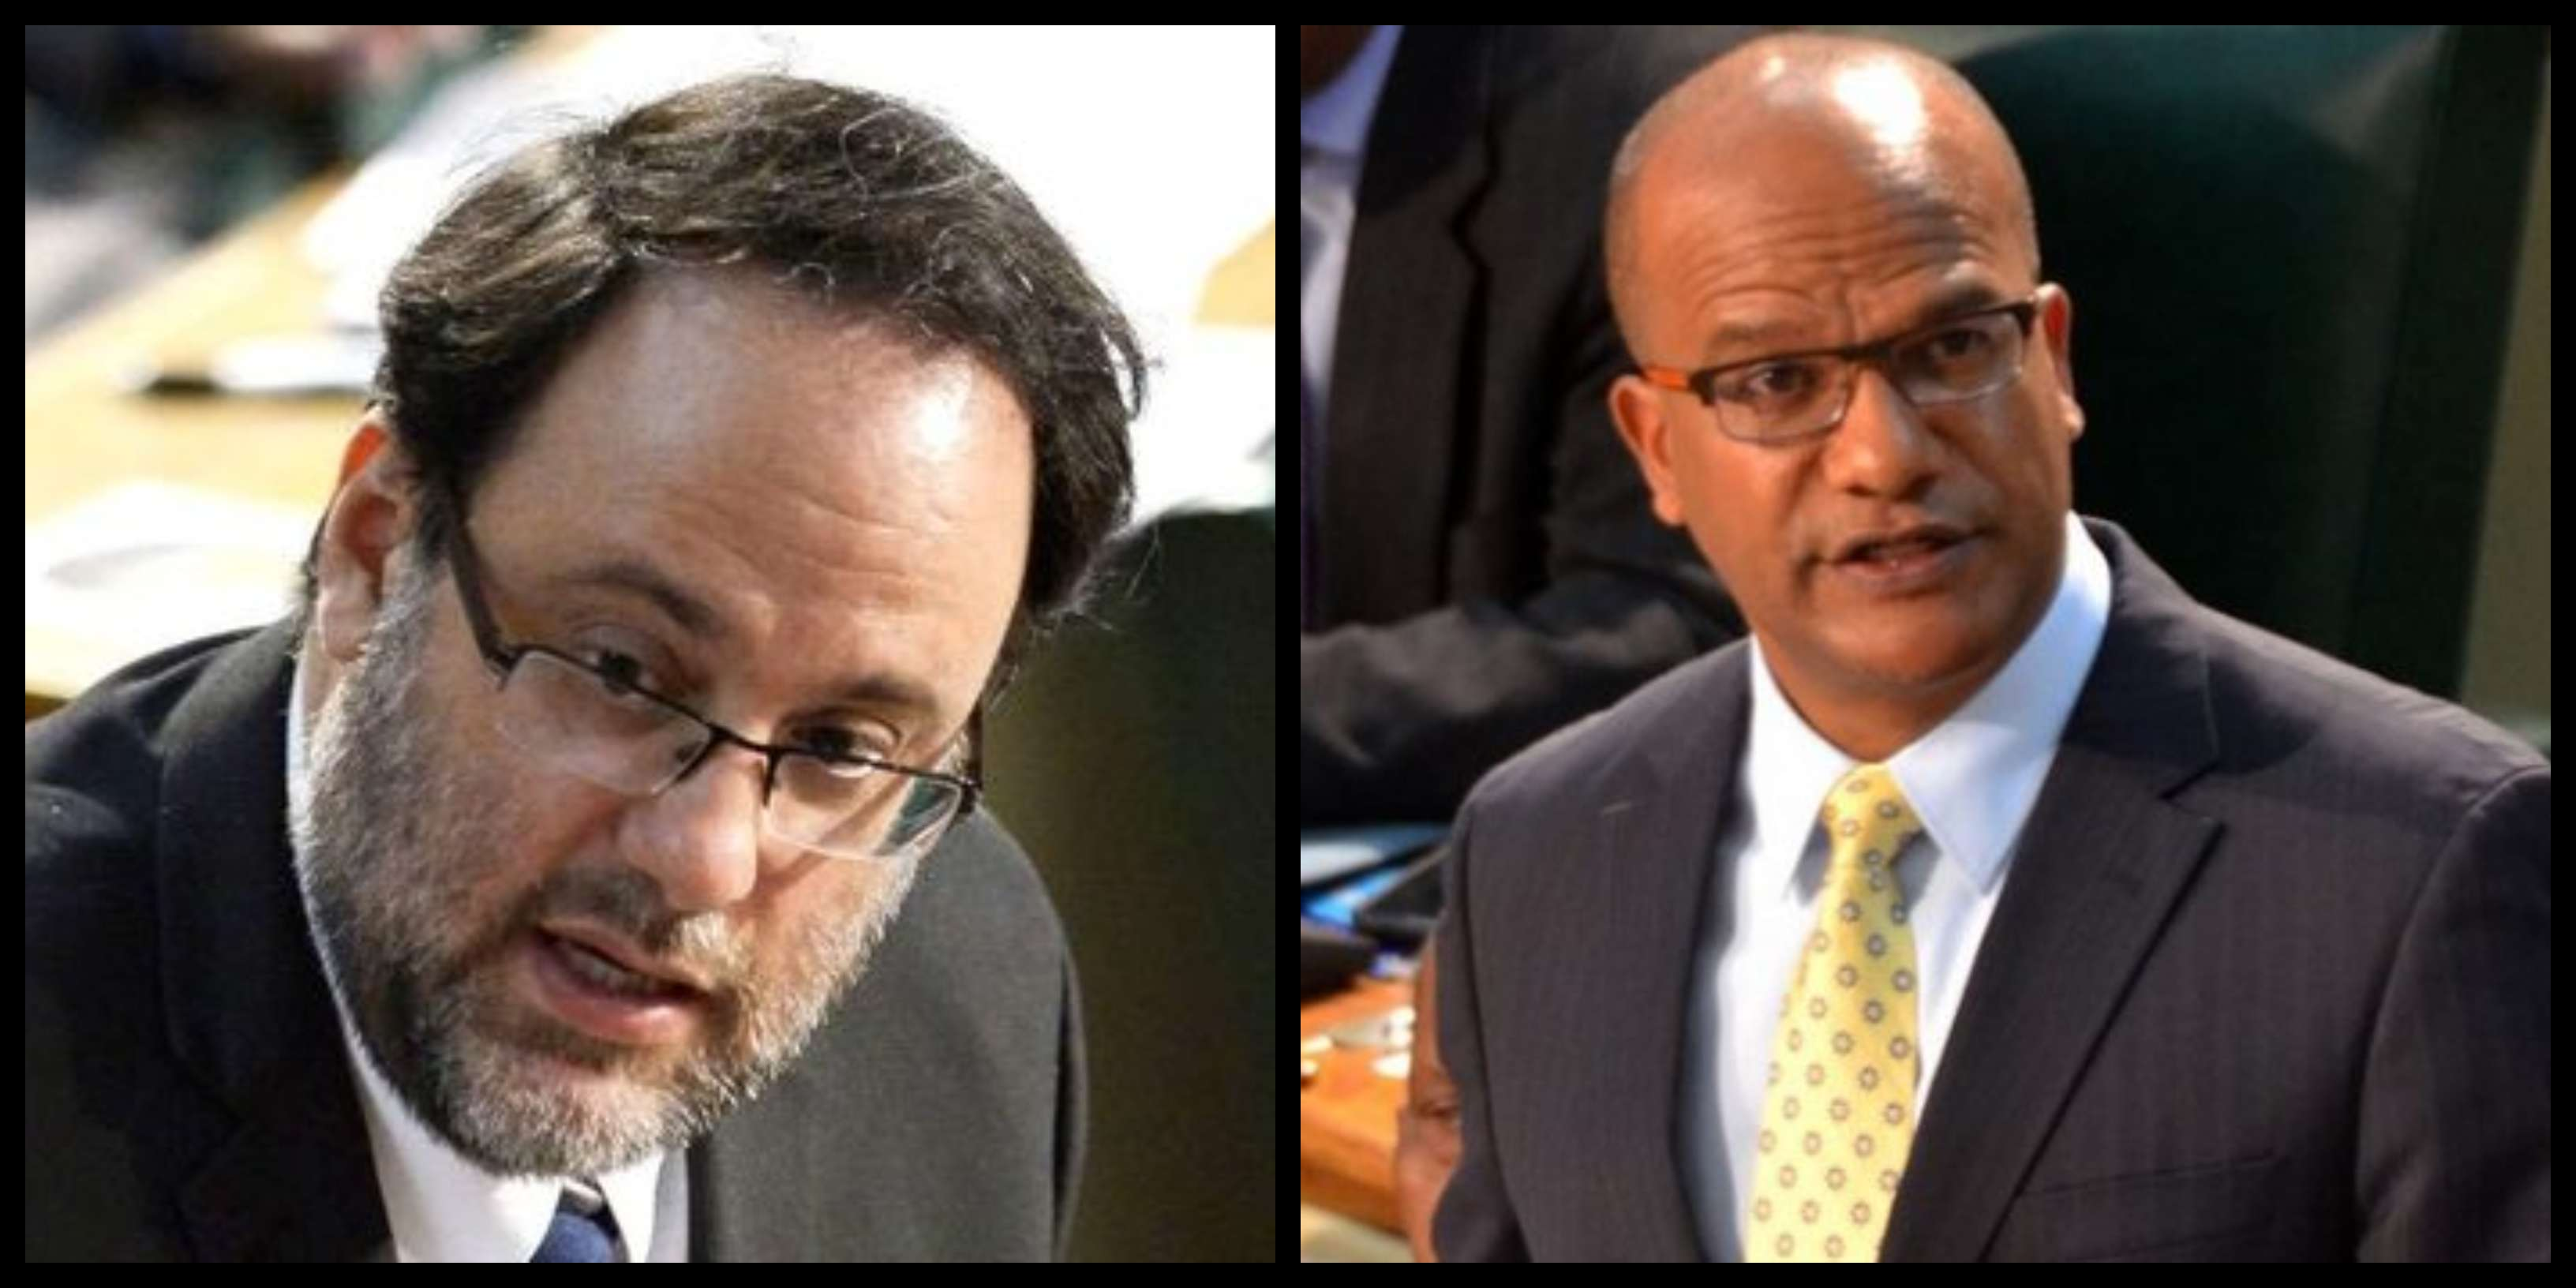 44 MPs Voted To Extend SOE In St Andrew South Police Division, Bunting & Golding Voted 'No'